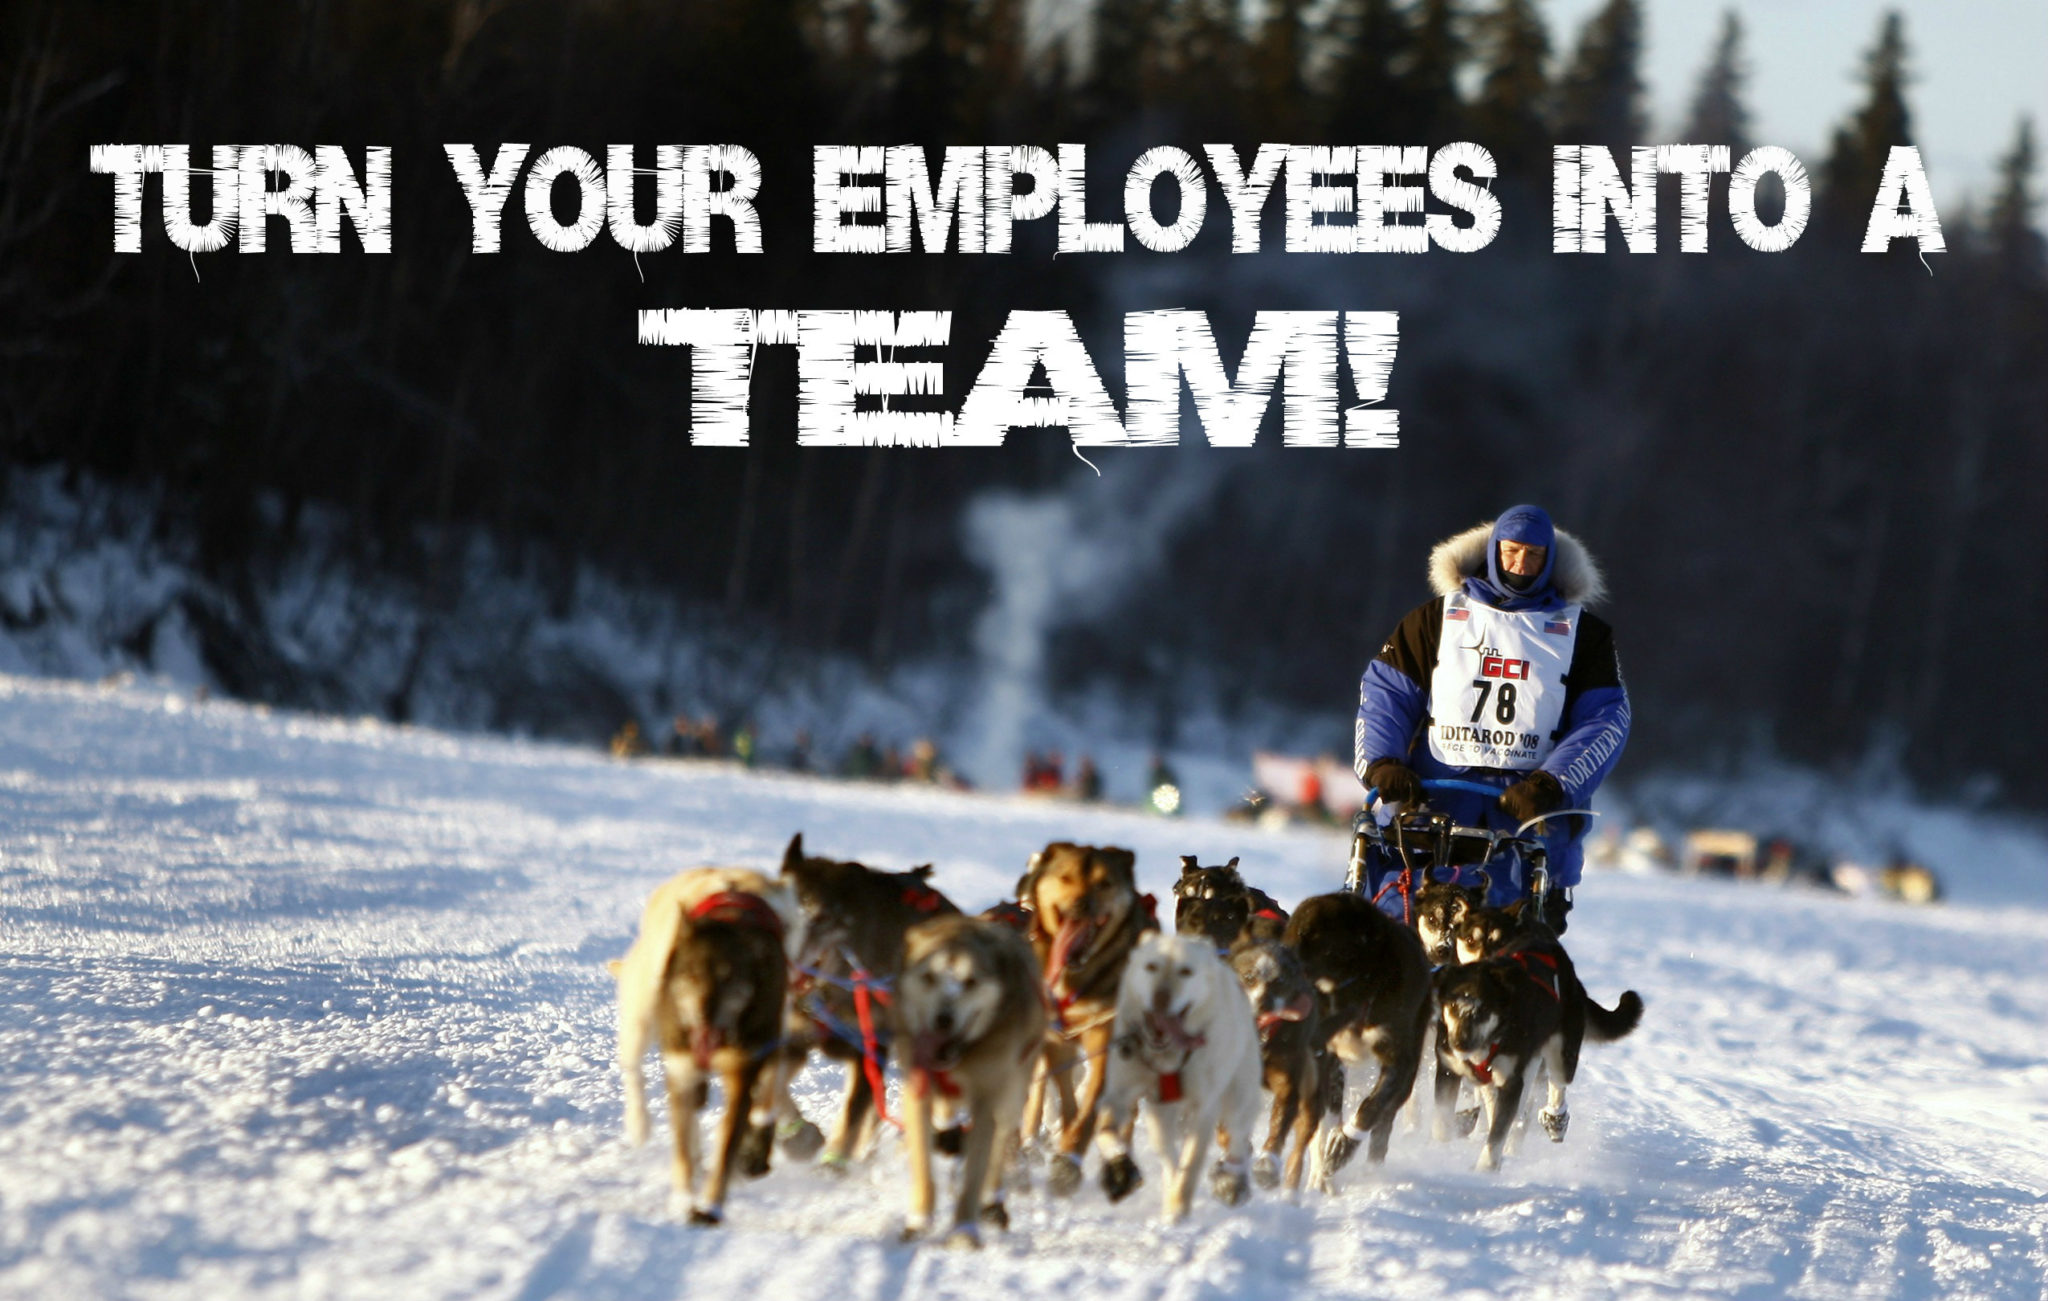 Employees into team